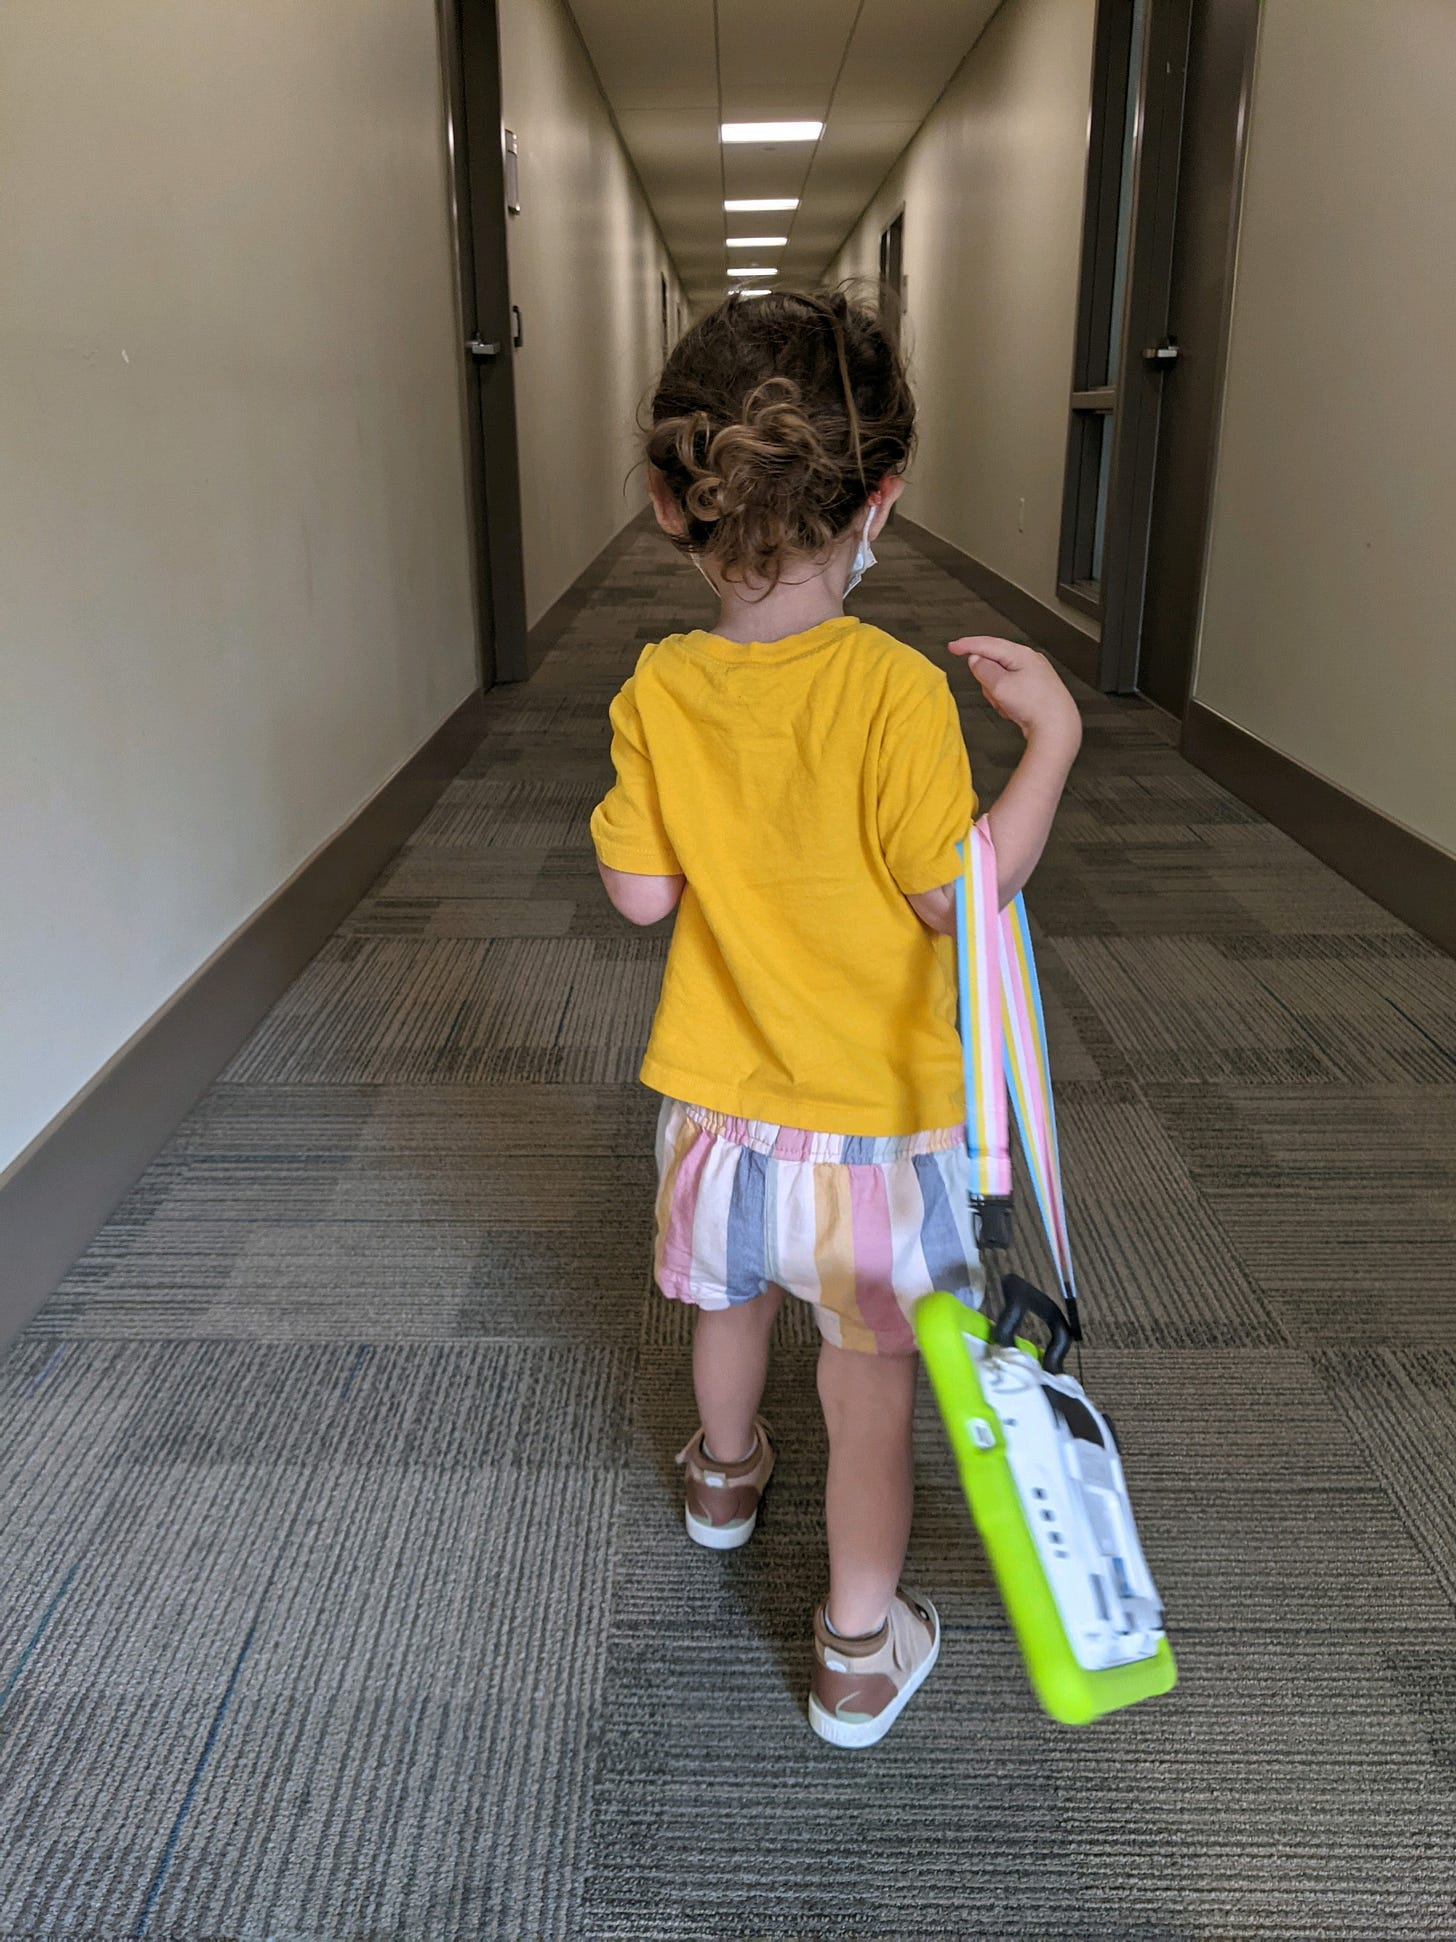 Photo of Lila walking away down a hallway holding her talker over her arm.